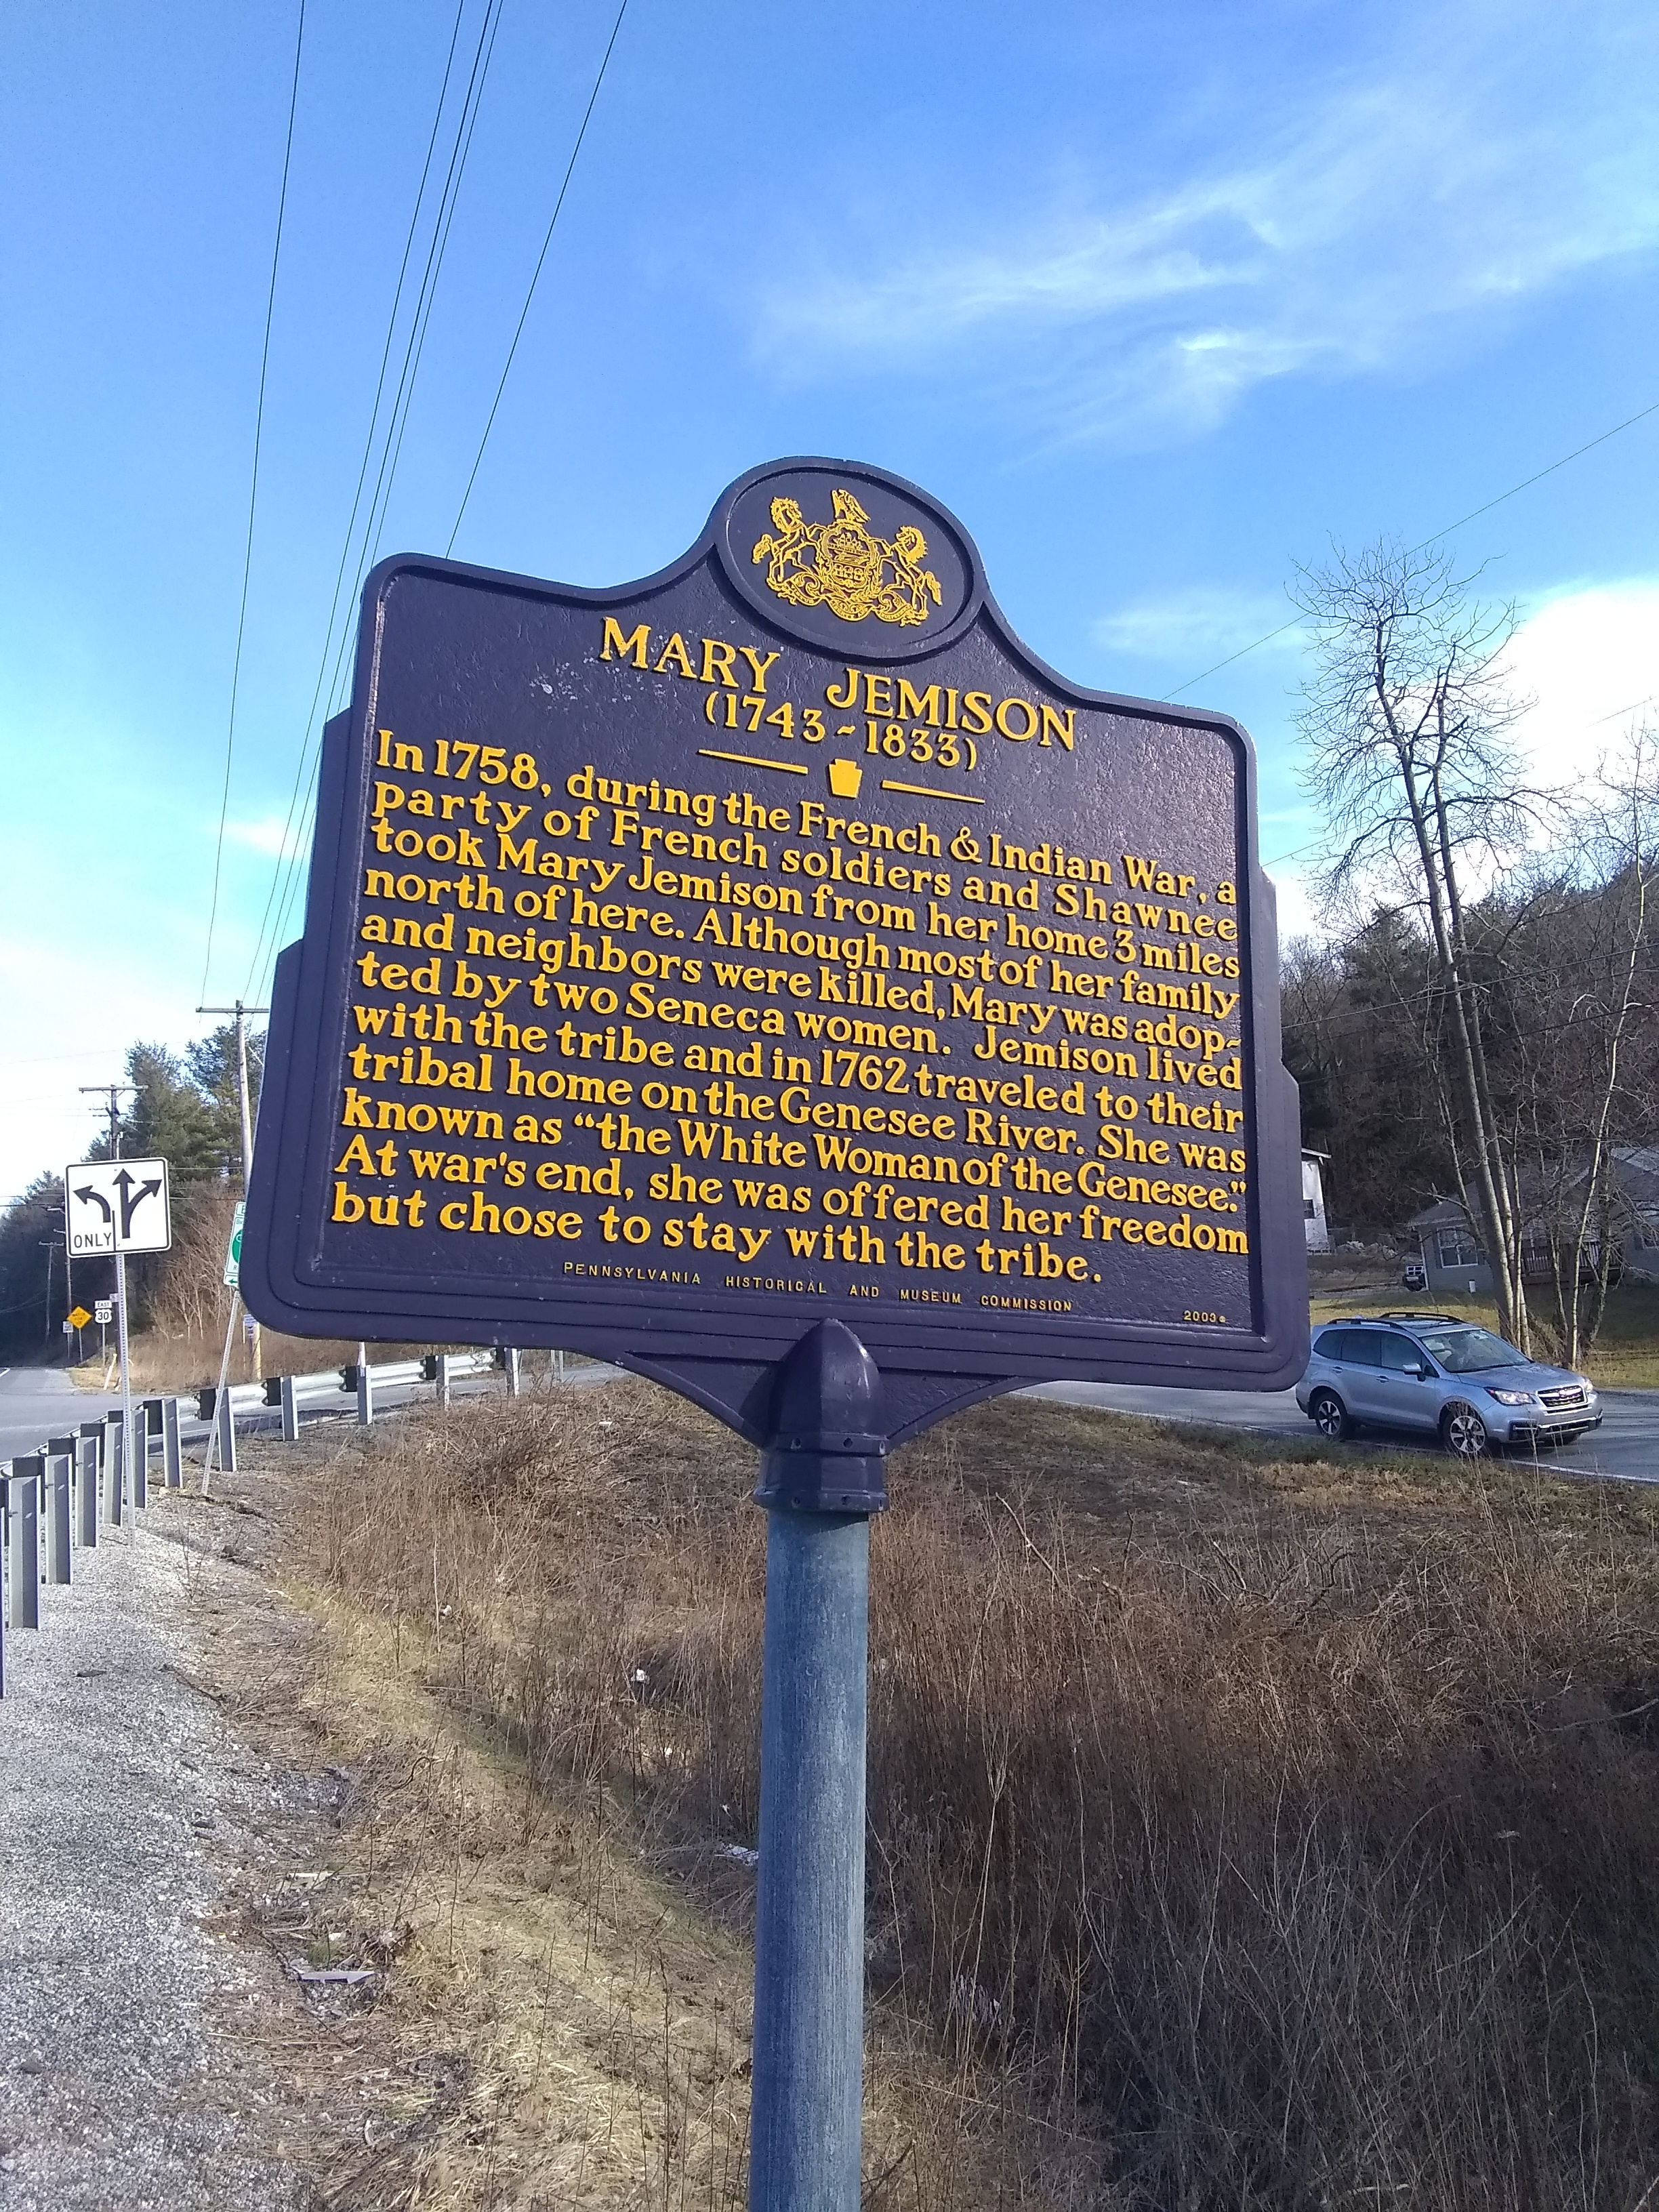 PA Historical Marker along US Route 30